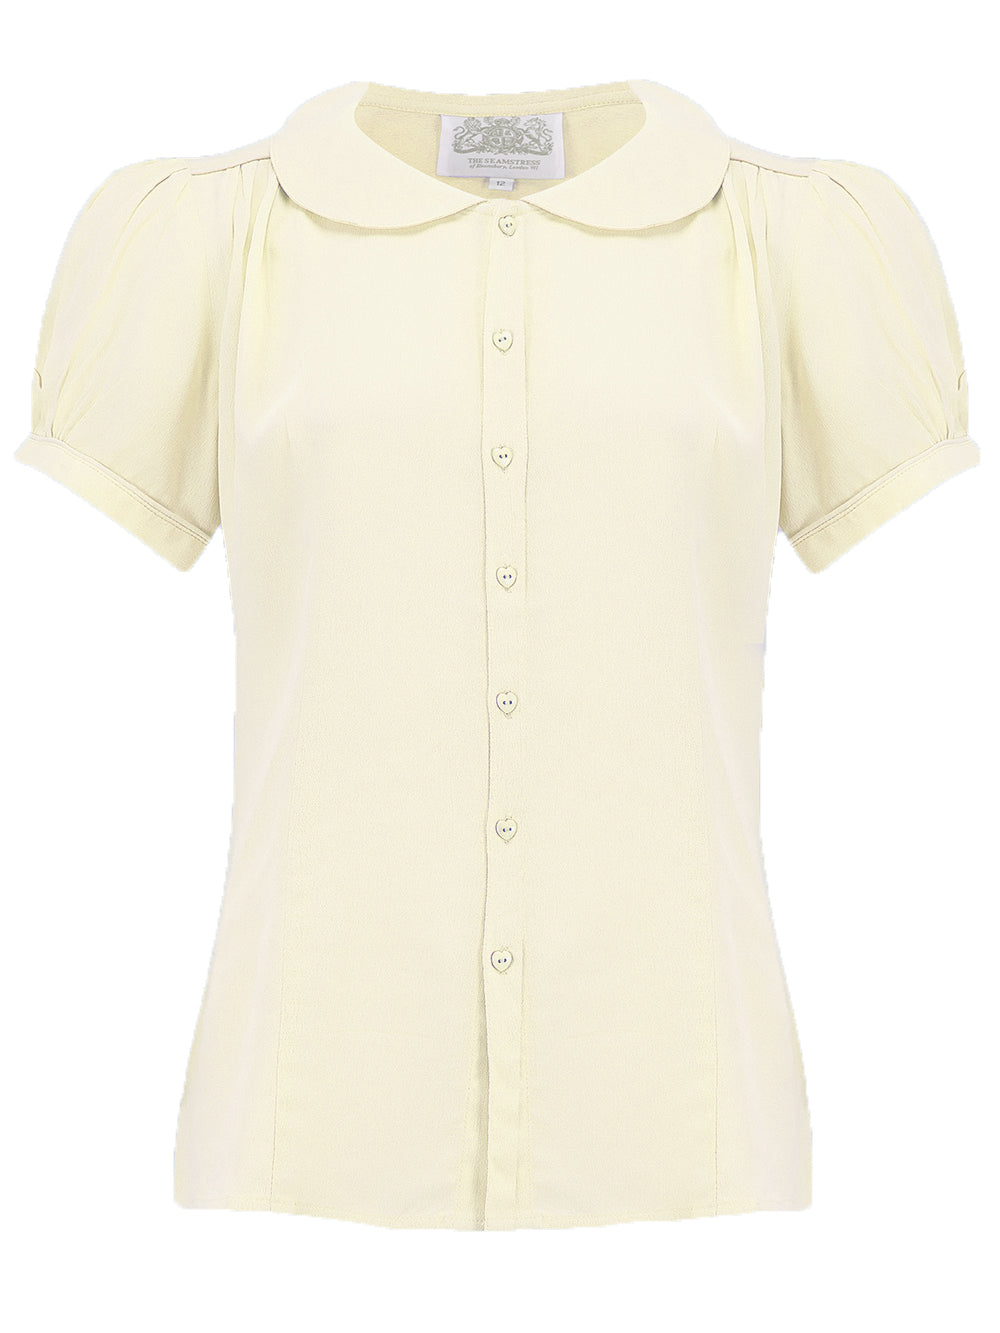 1940s Dresses and Clothing UK | 40s Shoes UK Jive Short Sleeve Blouse in Cream Classic 1940s Vintage Inspired Style £39.00 AT vintagedancer.com